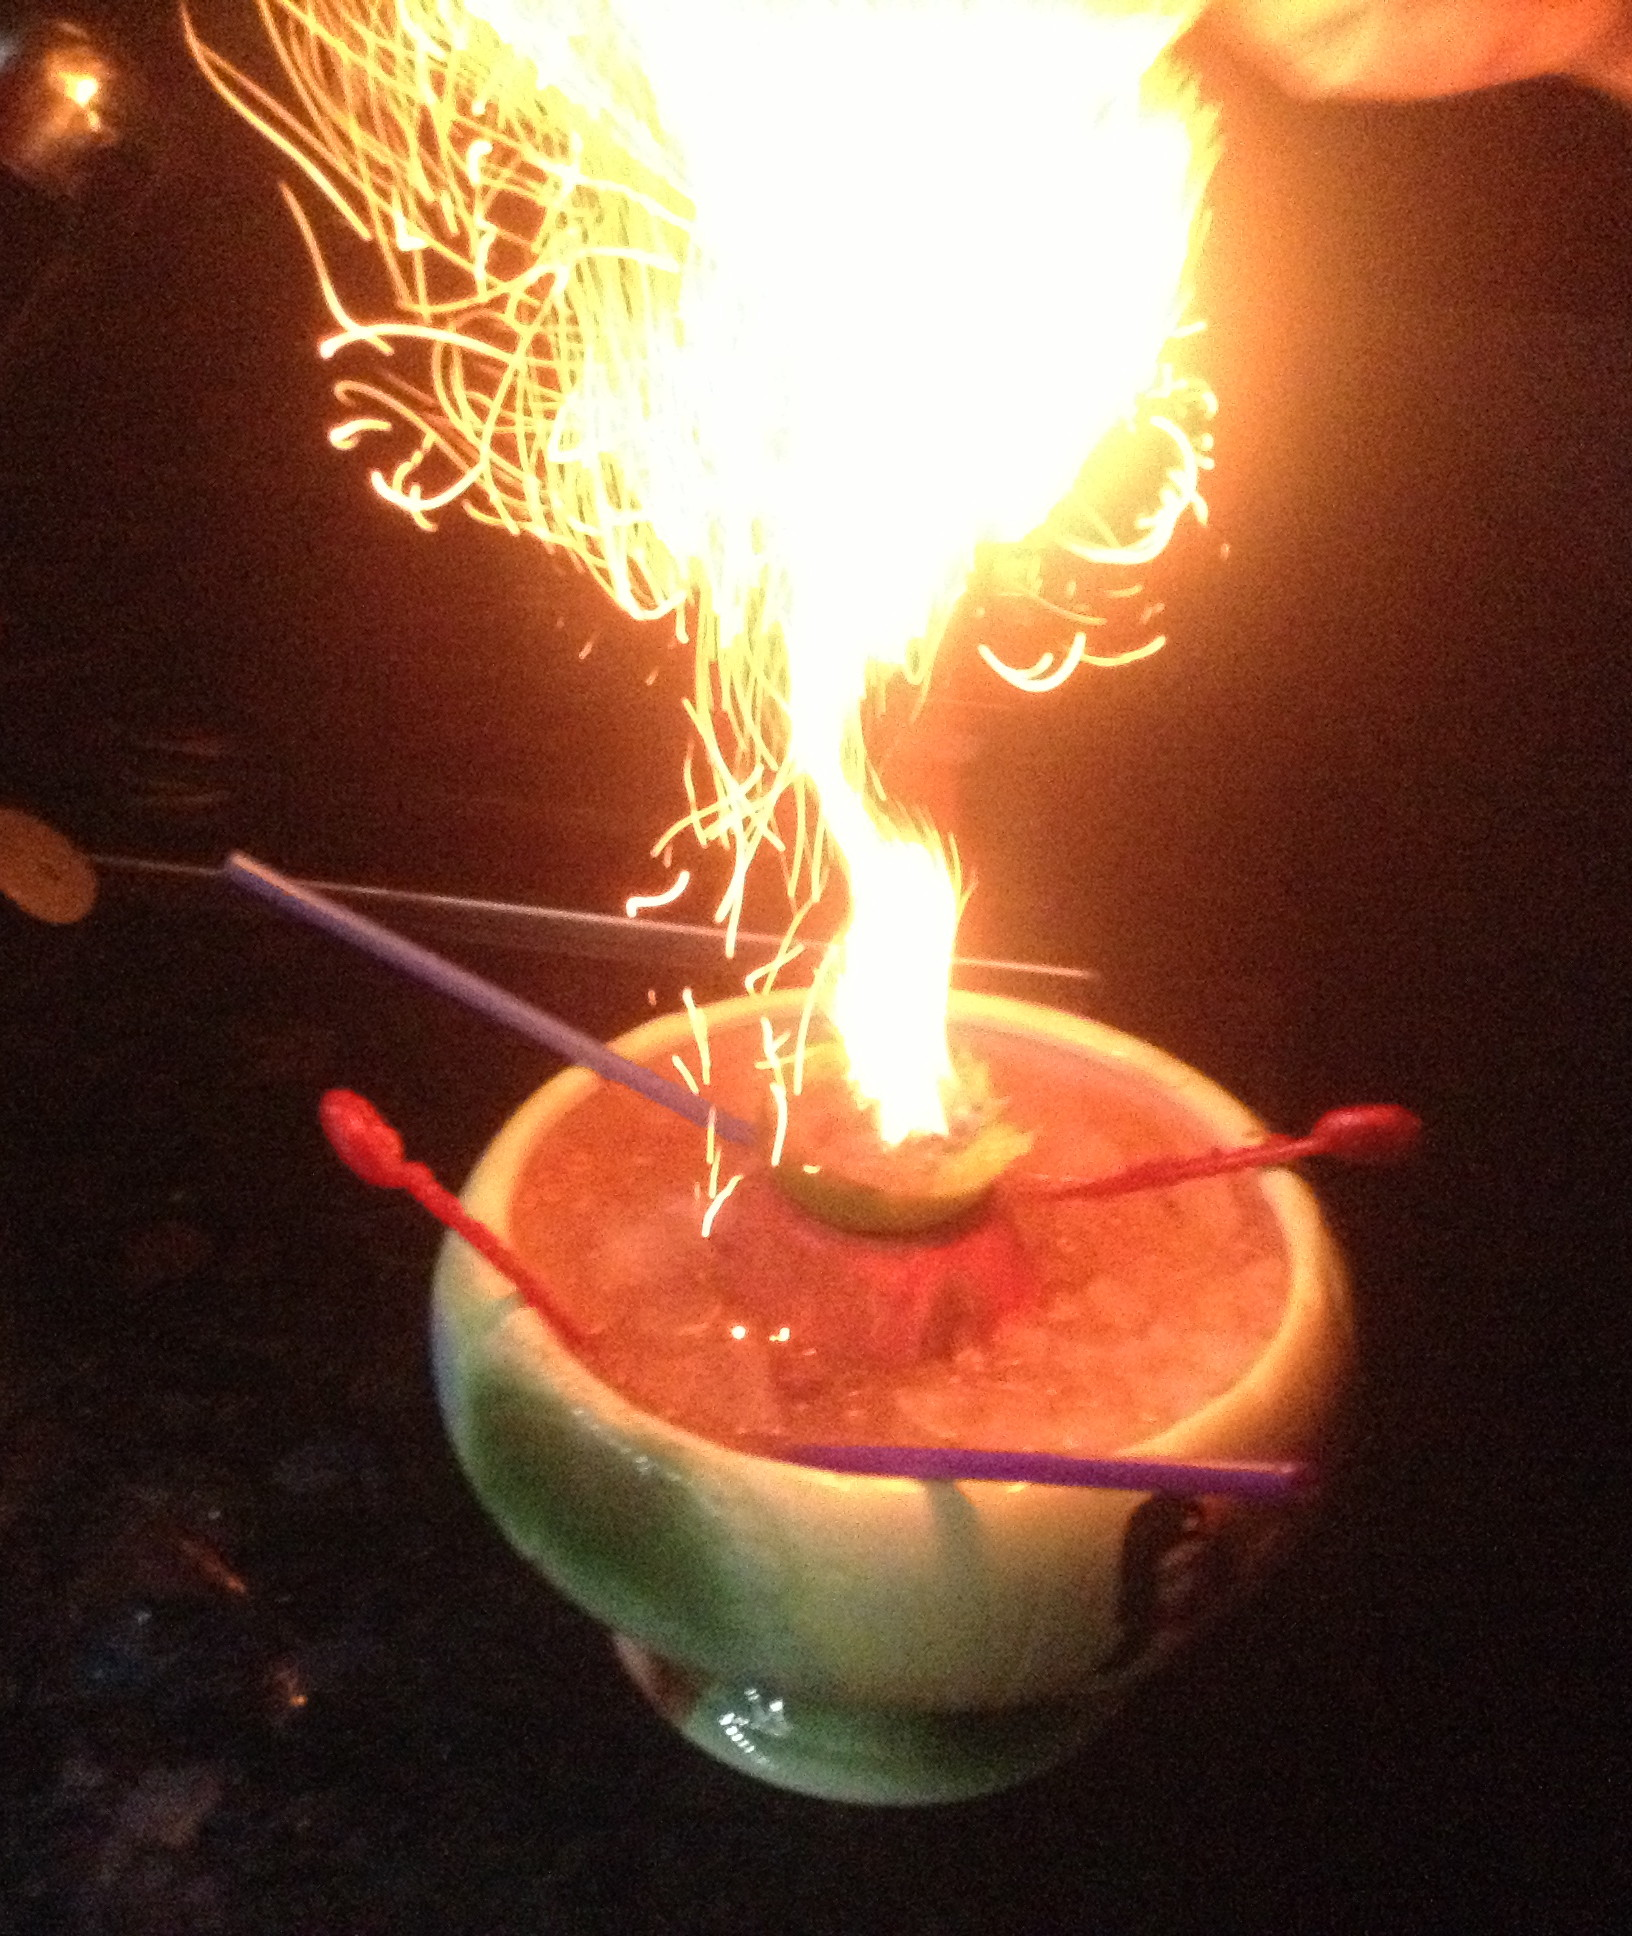 donga punch in the volcano bowl